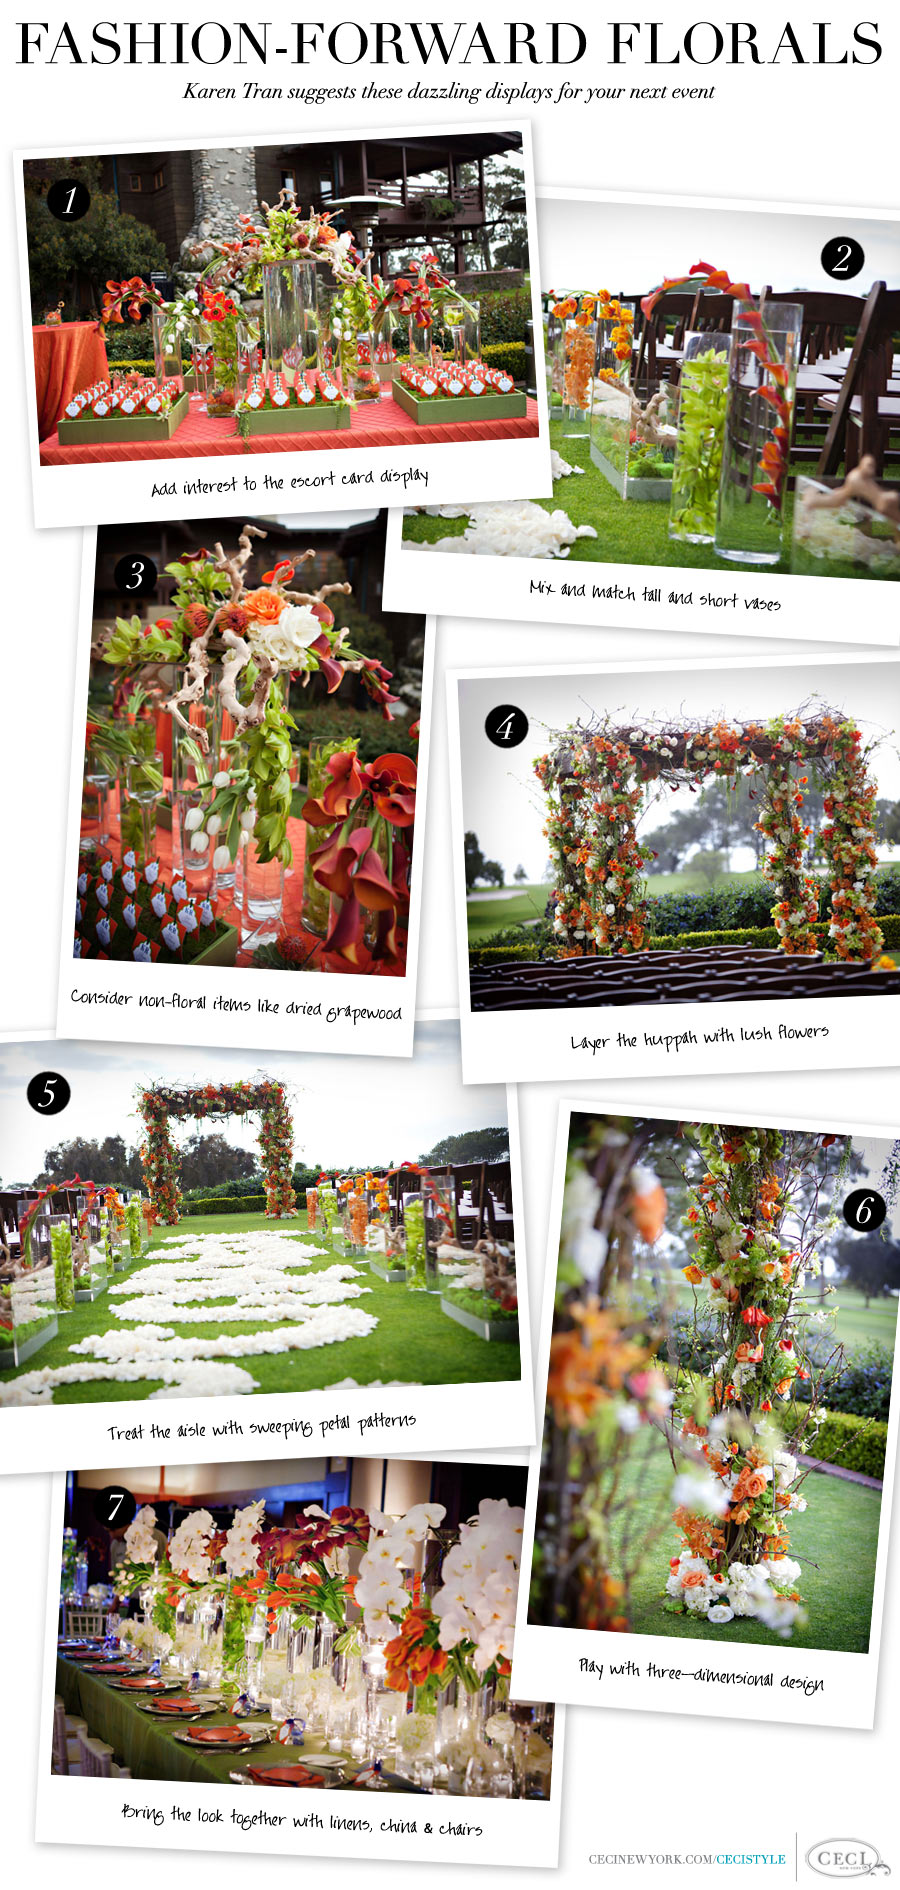 Fashion-Forward Florals - Karen Tran suggests these dazzling displays for your next event